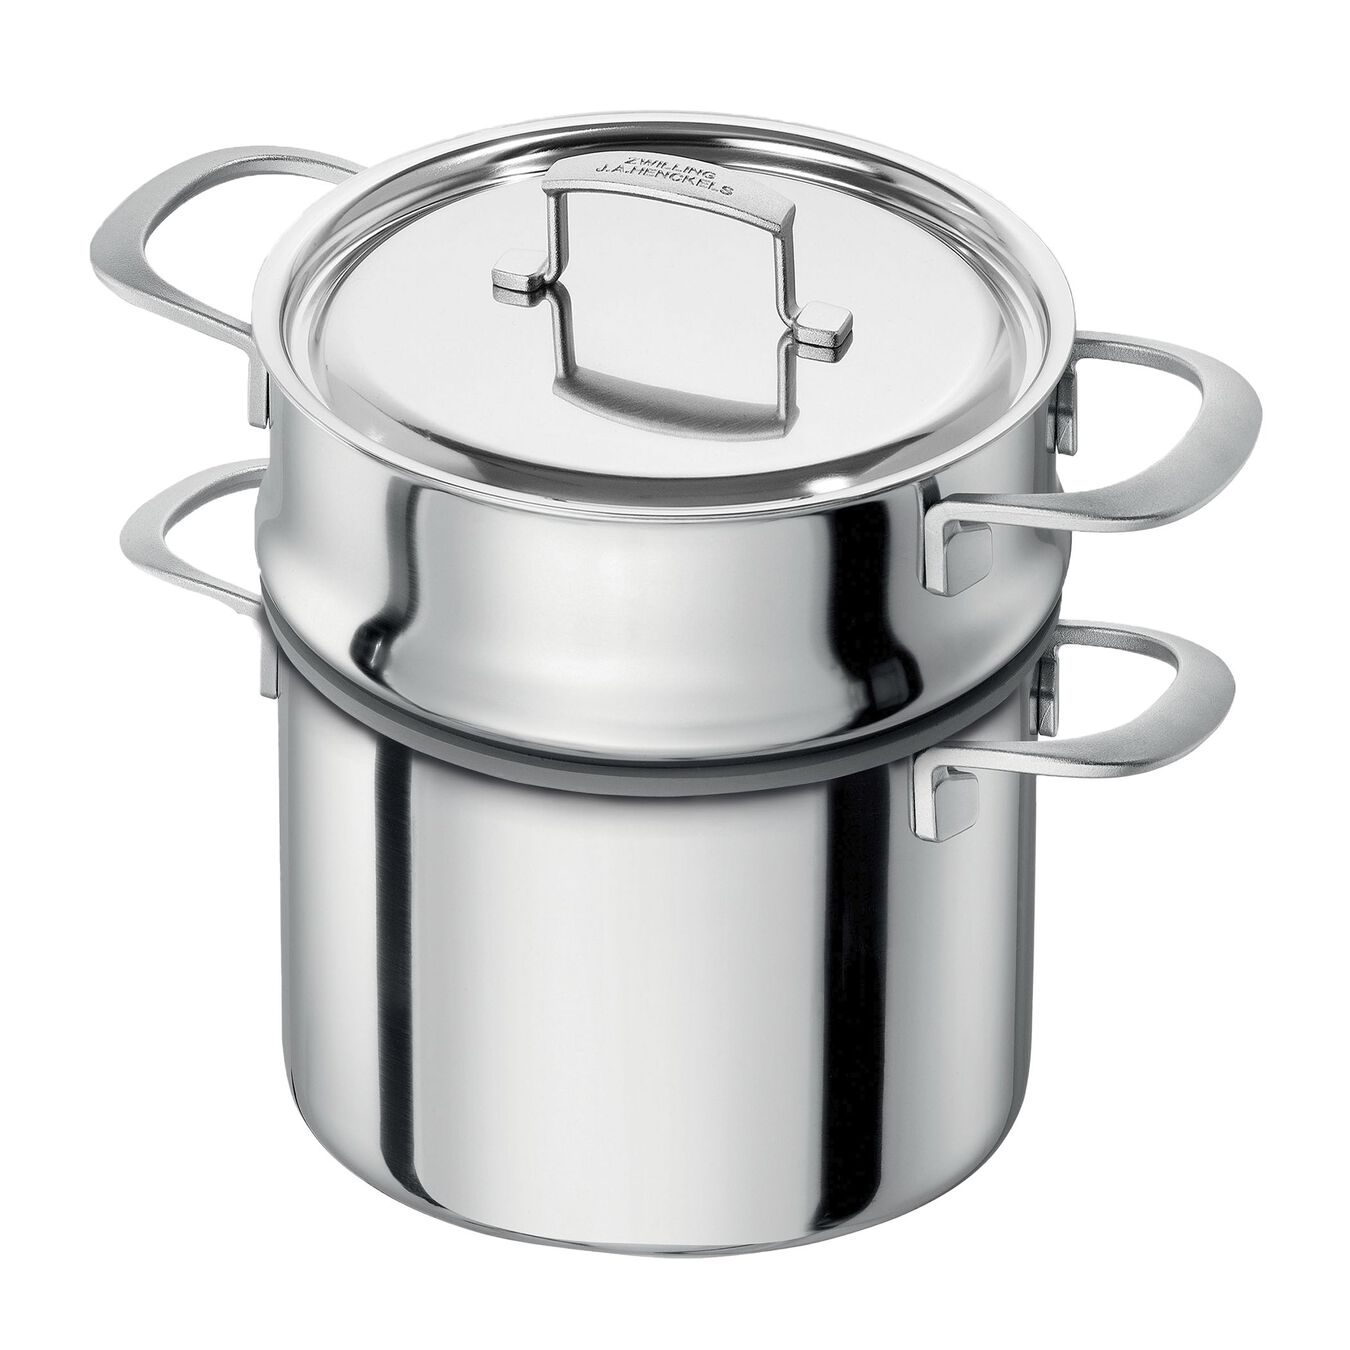 10-pcs 18/10 Stainless Steel Ensemble de casseroles et poêles,,large 6